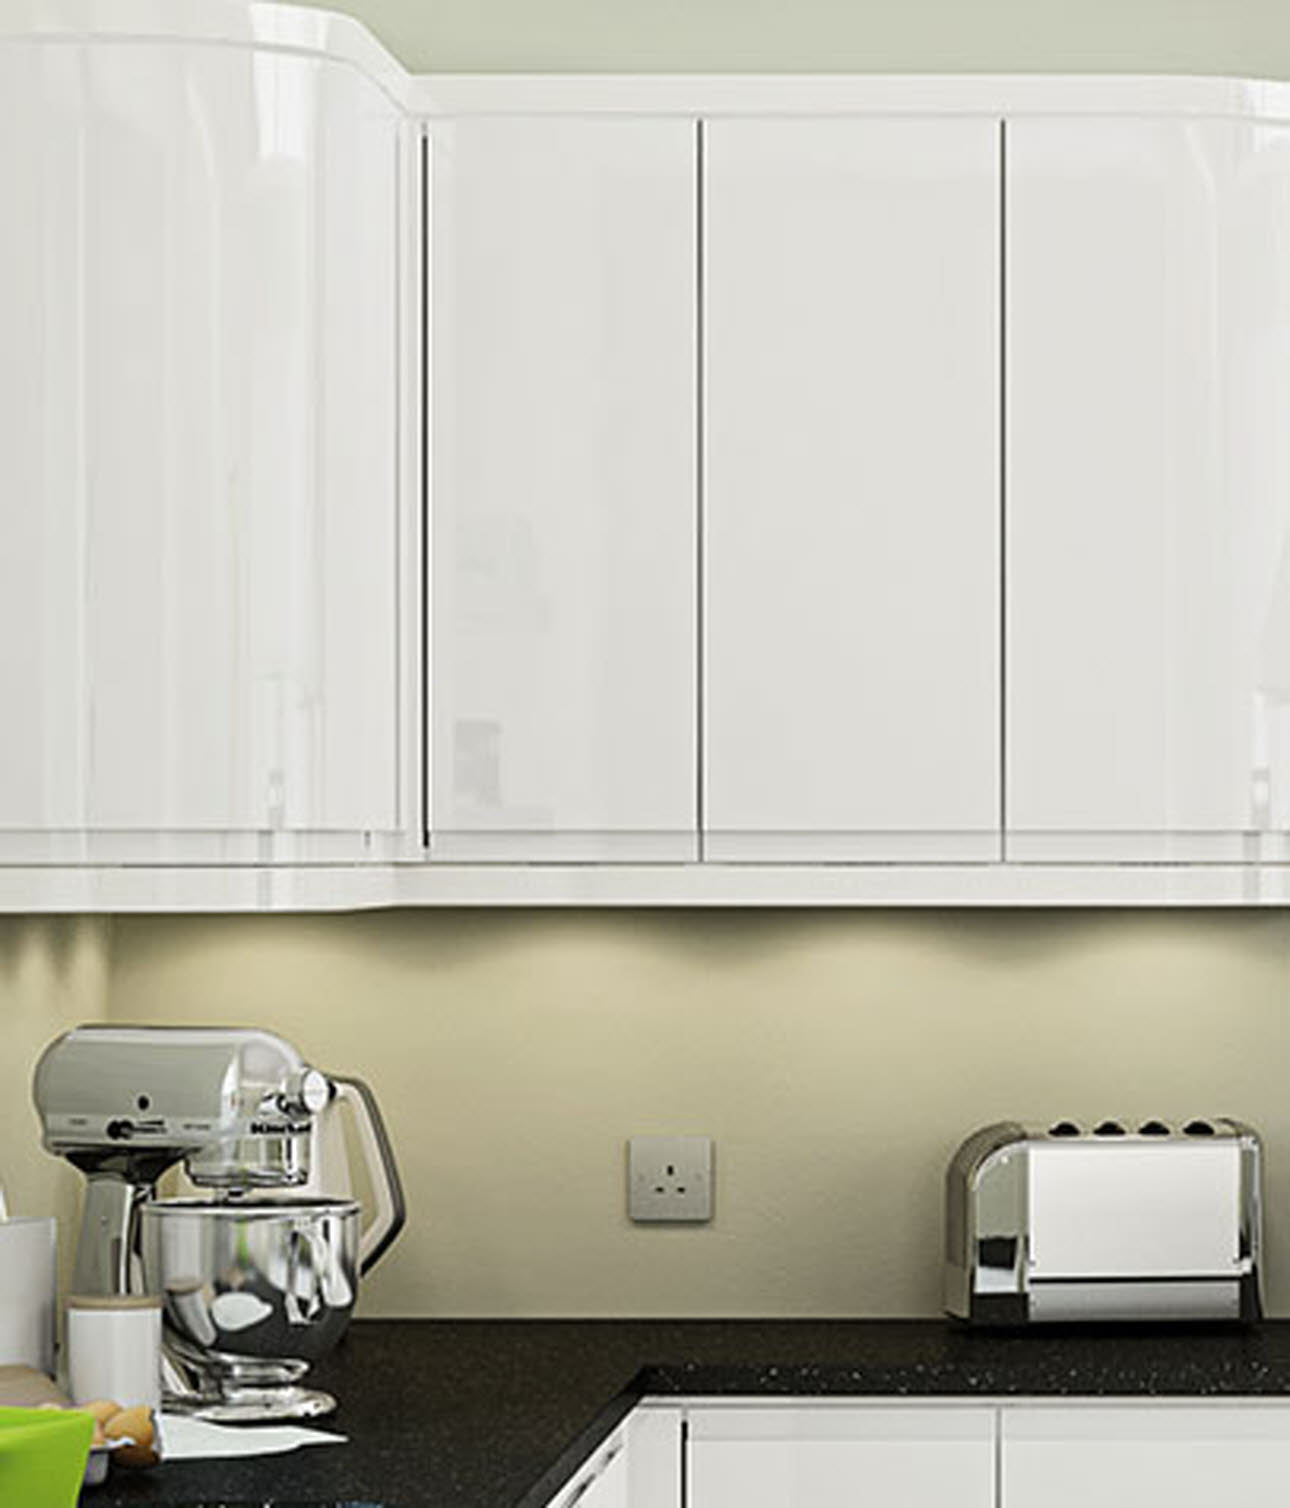 White kitchen wall mounted cupboards above black granite worktop